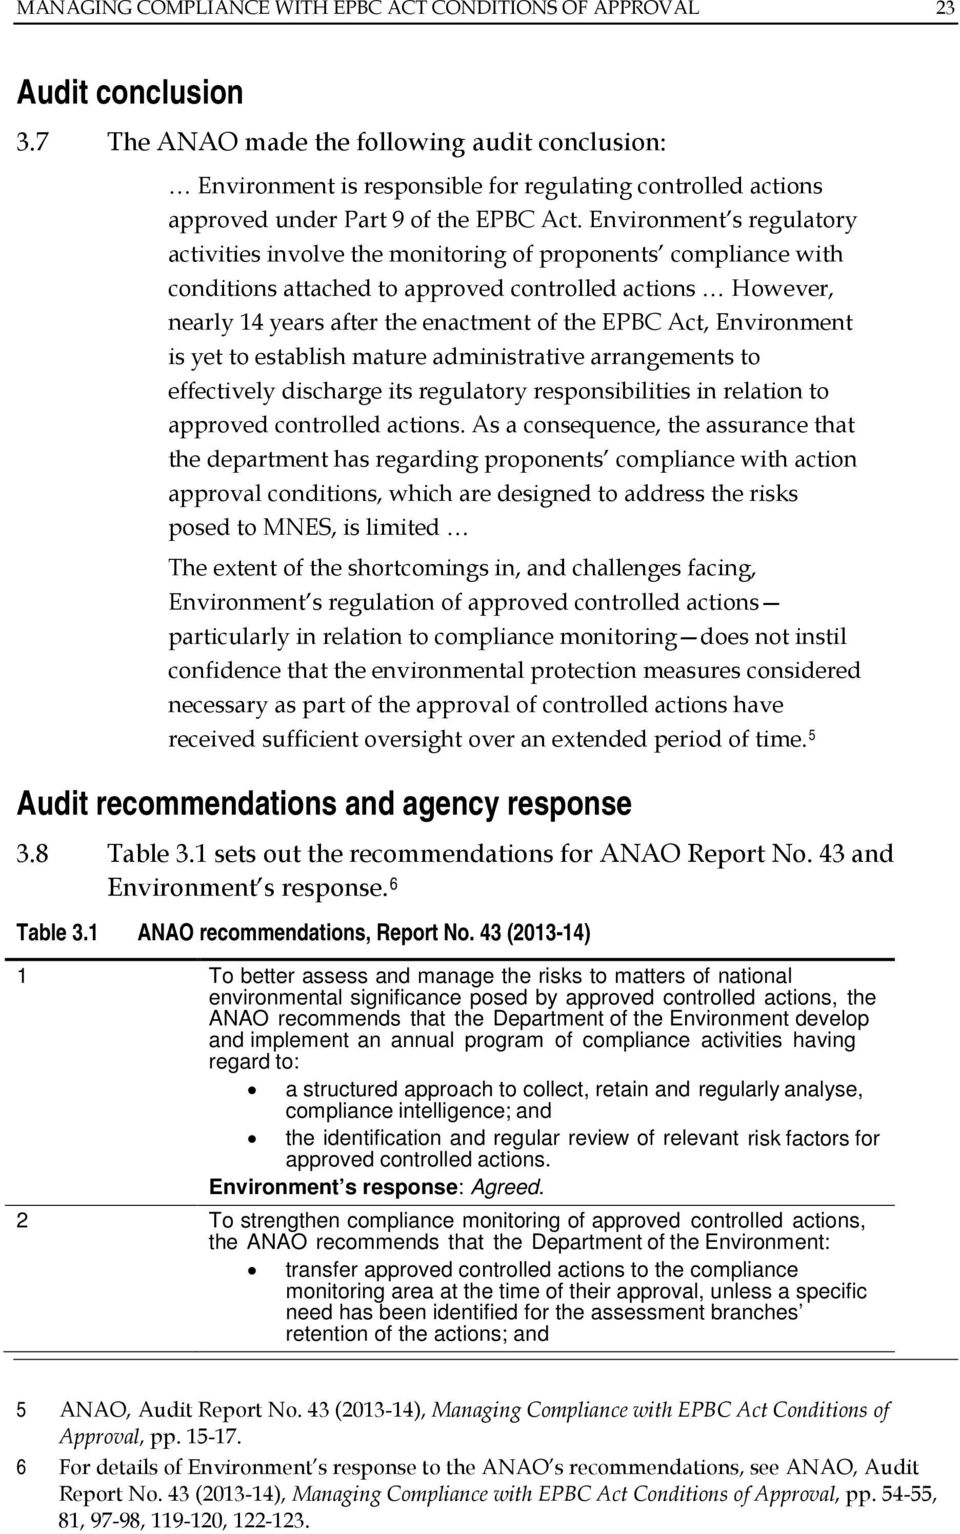 Environment s regulatory activities involve the monitoring of proponents compliance with conditions attached to approved controlled actions However, nearly 14 years after the enactment of the EPBC